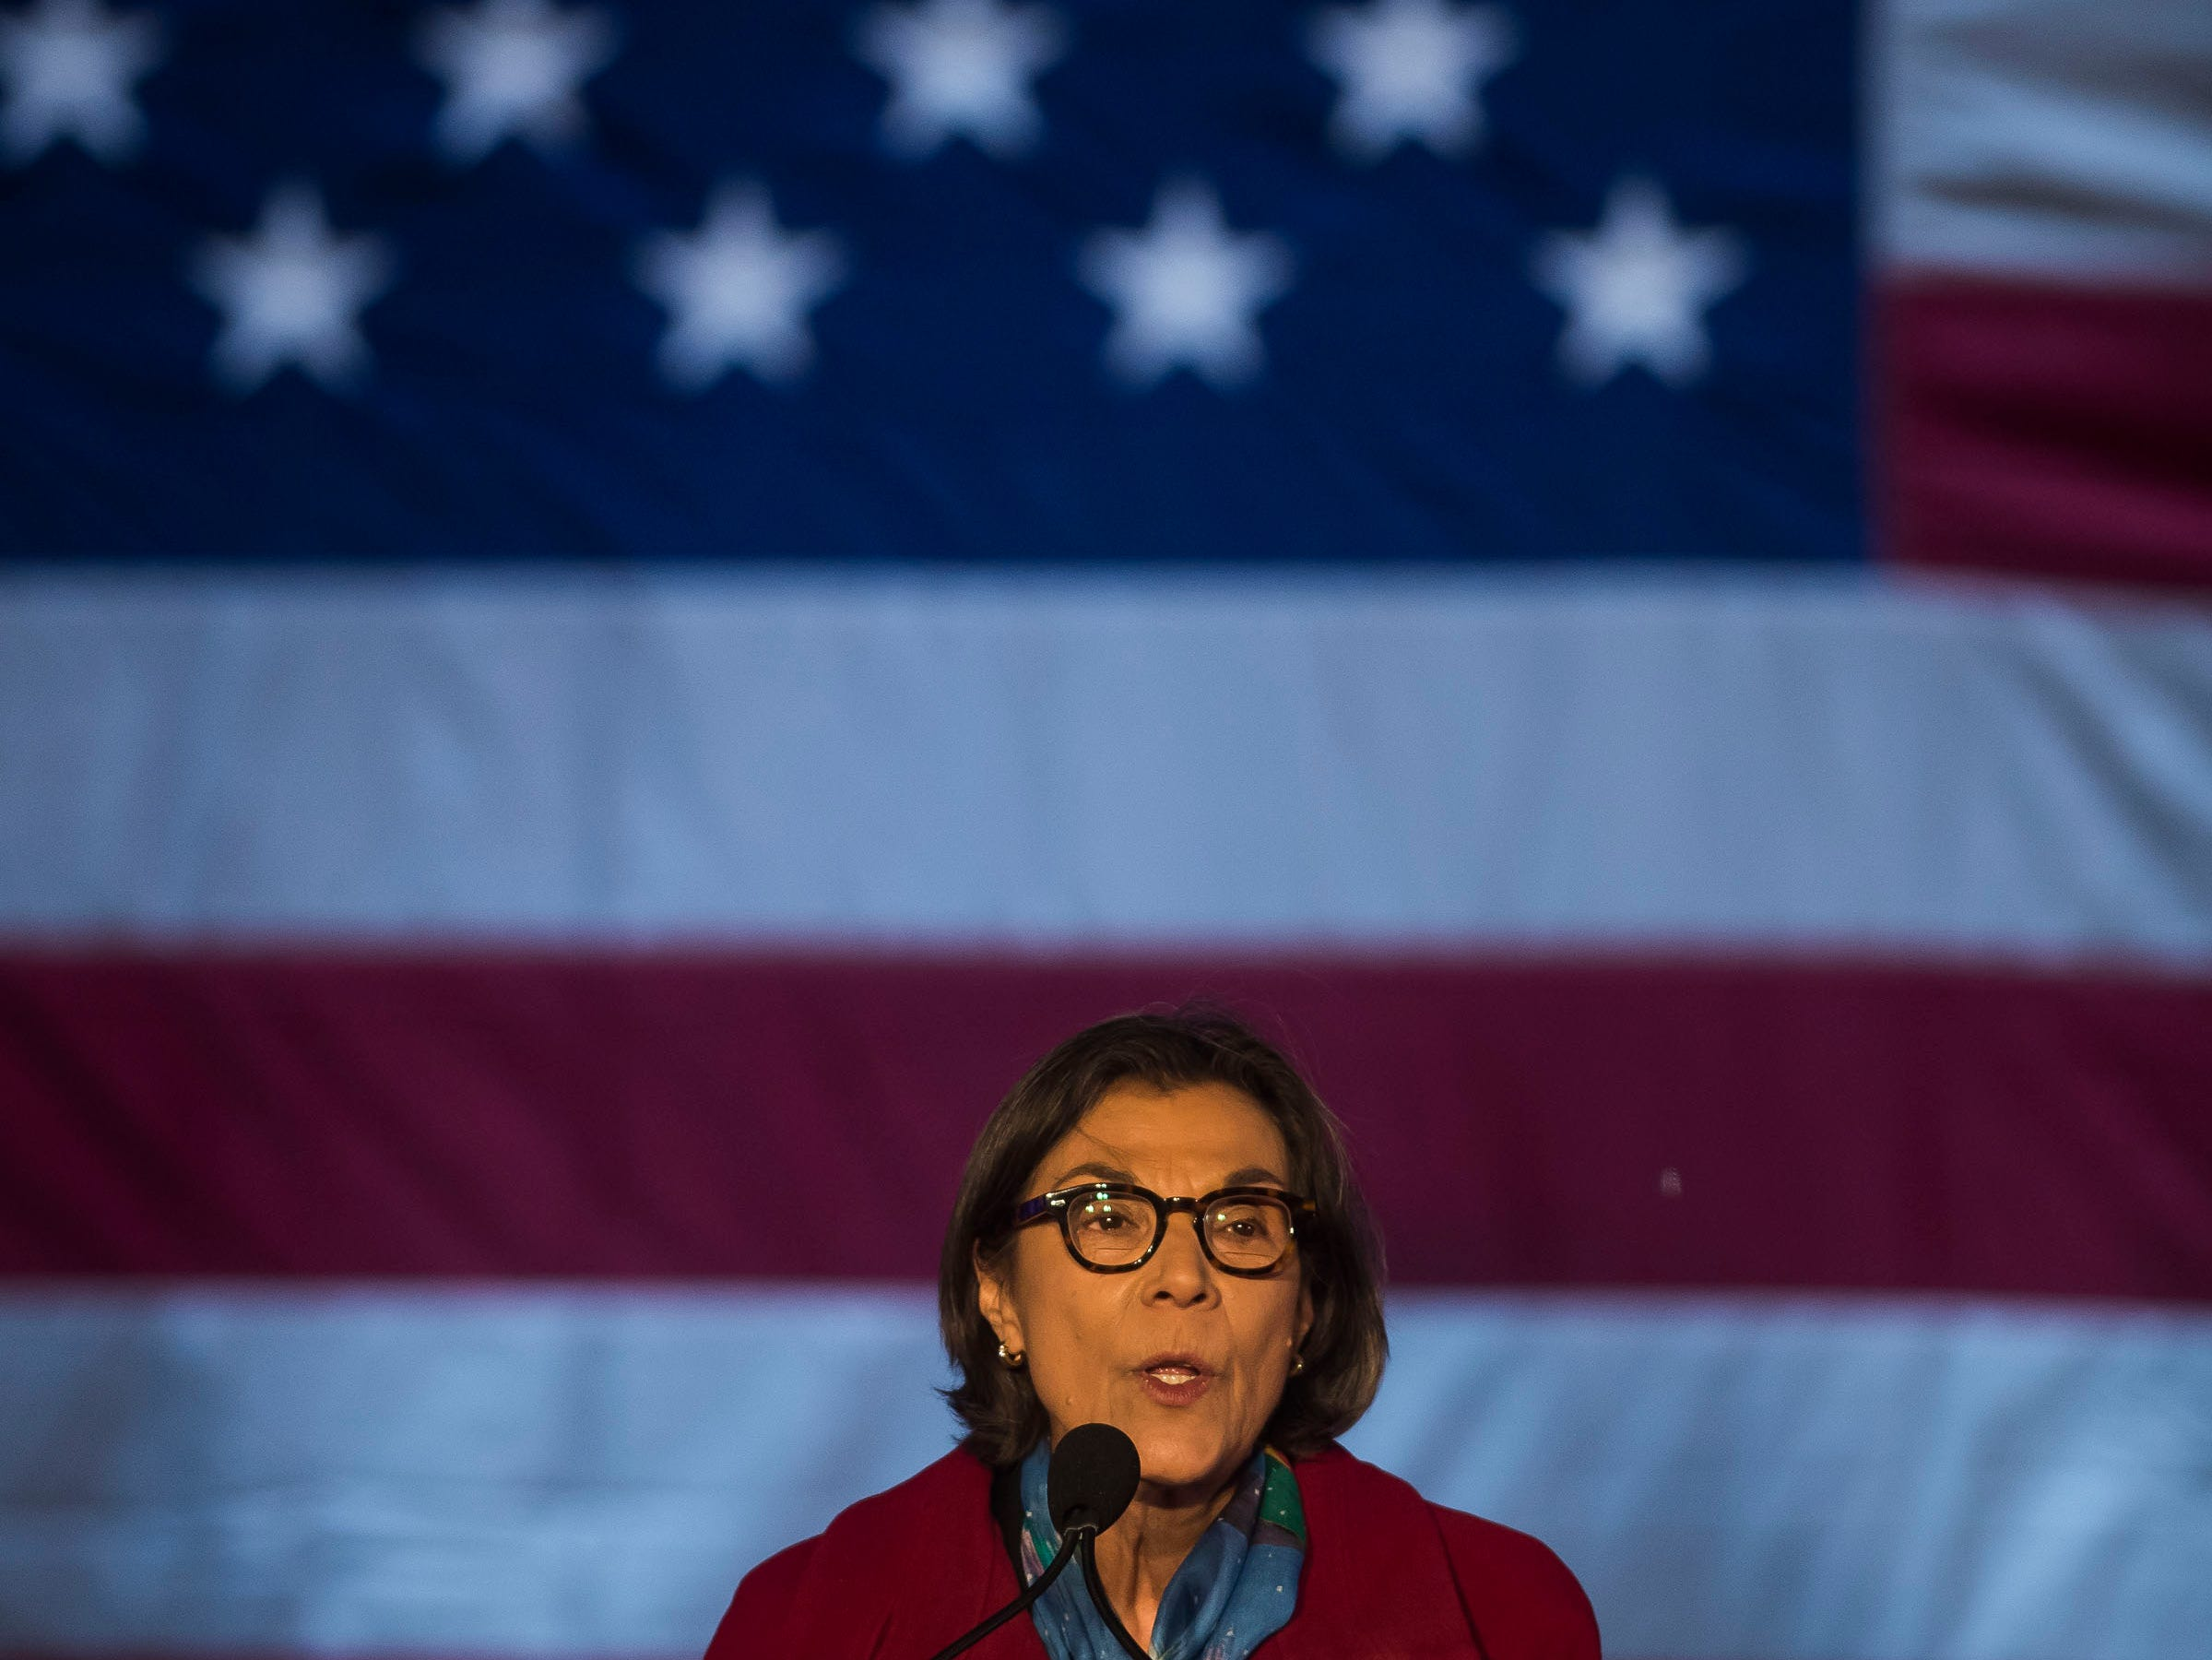 Former State Senate minority leader Reverend Lucia Guzman speaks at the John Hickenlooper presidential campaign kick-off rally on Thursday, March 7, 2019, at the Greek Ampitheatre in Civic Center Park in Denver, Colo.